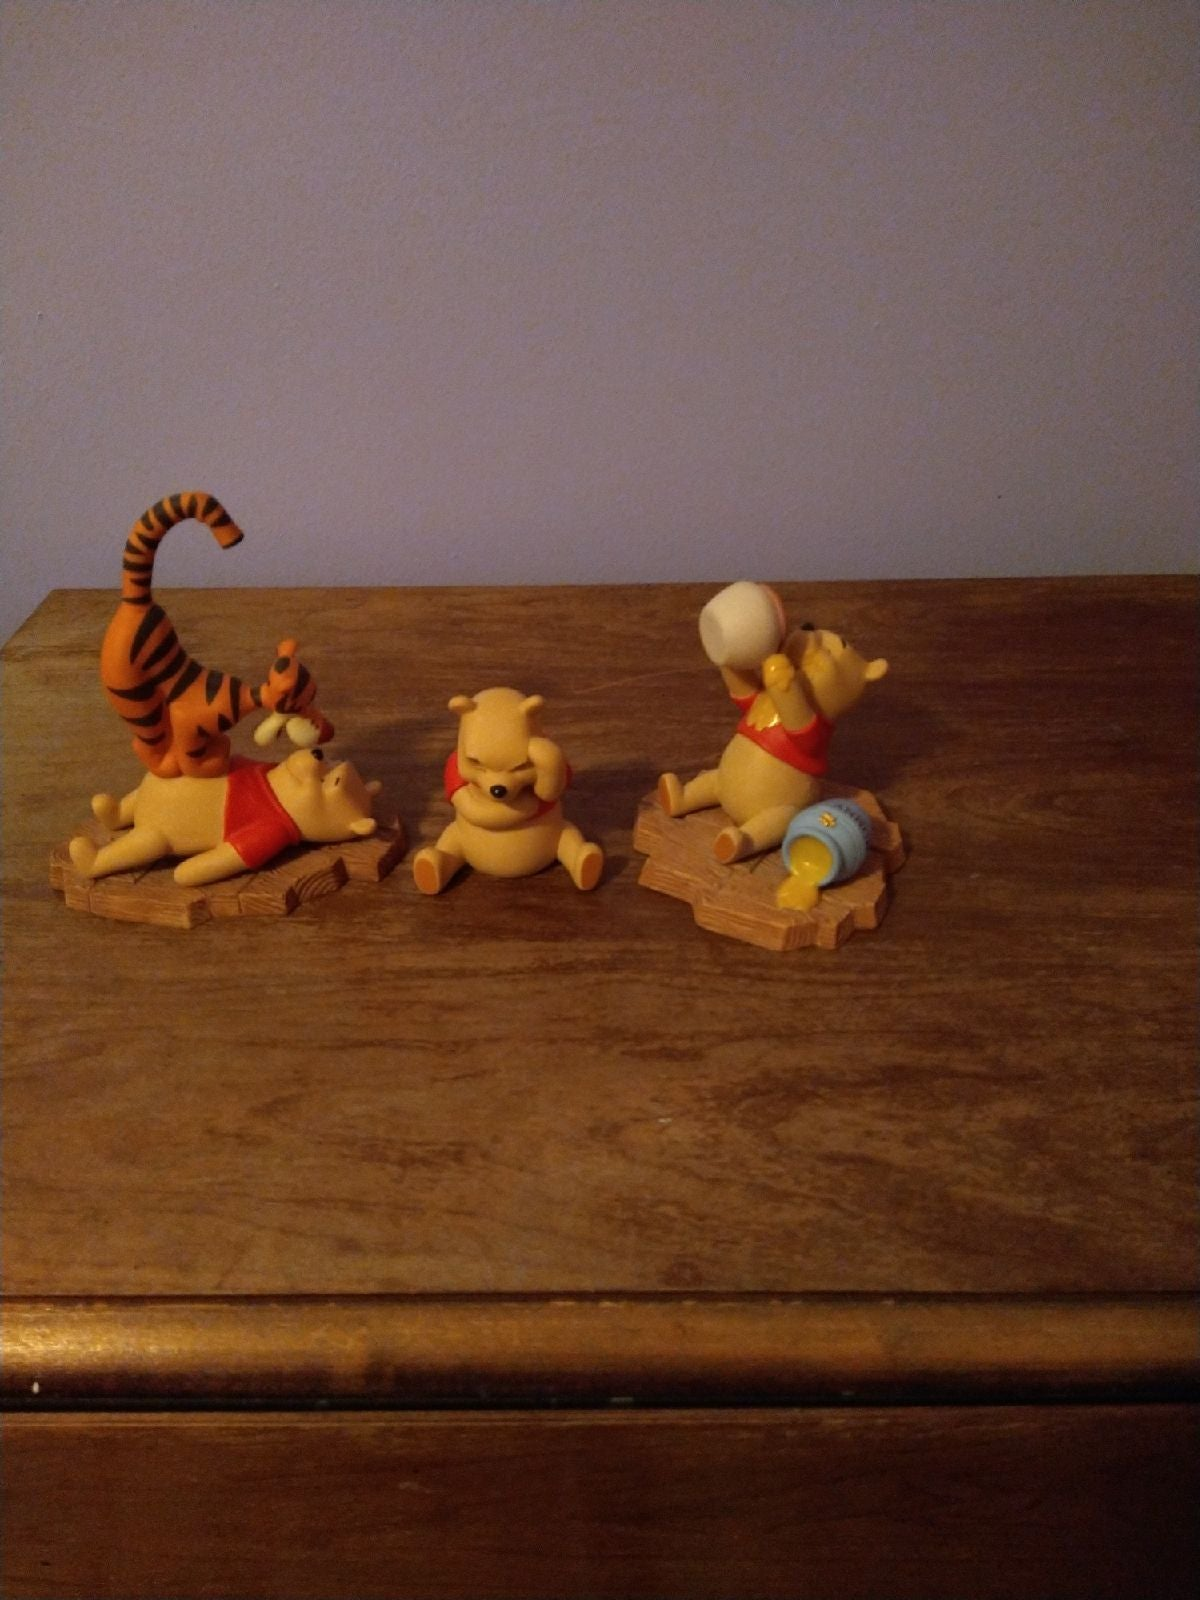 Pooh and Friends collectable figurines